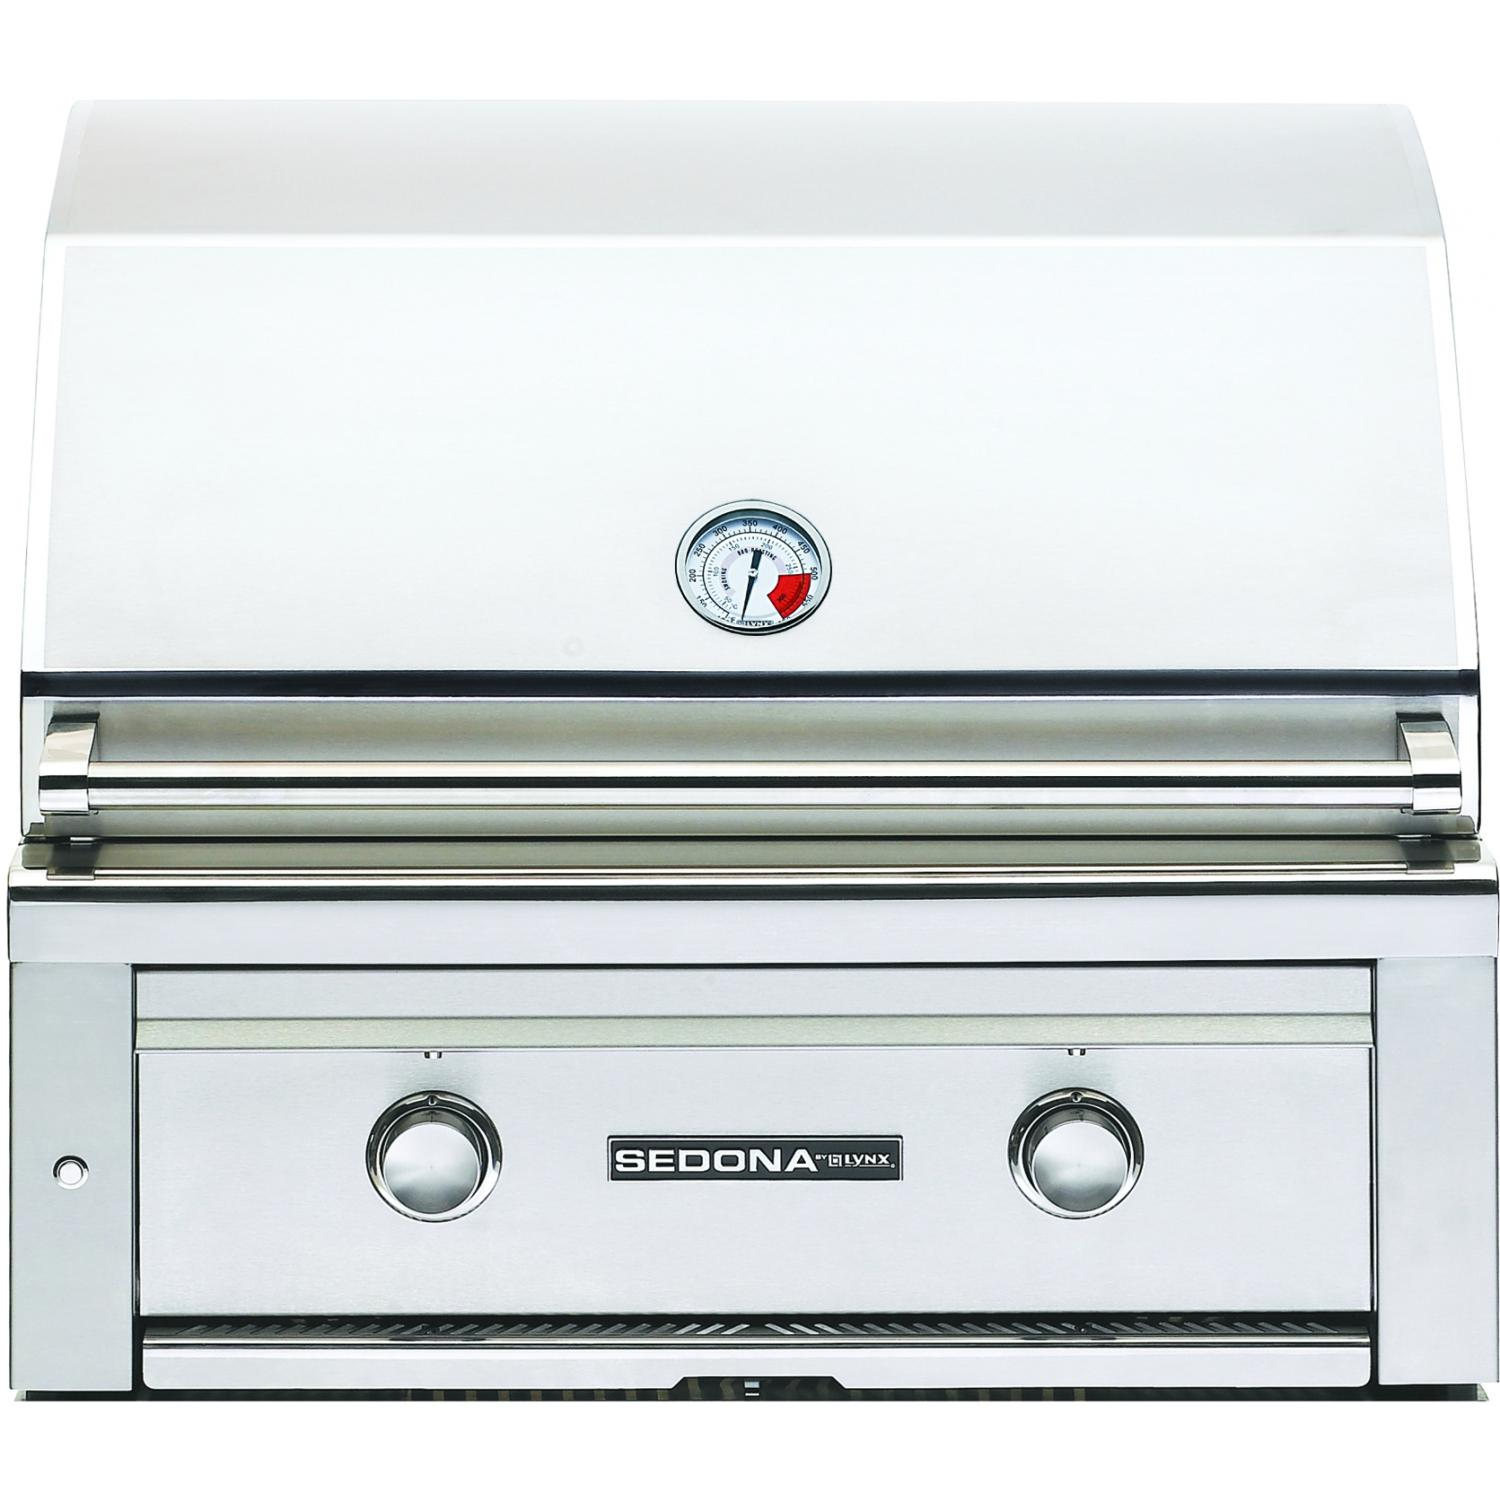 Lynx Sedona By Lynx 30-inch Built-in Propane Gas Grill With Prosear Burner L500ps-lp at Sears.com